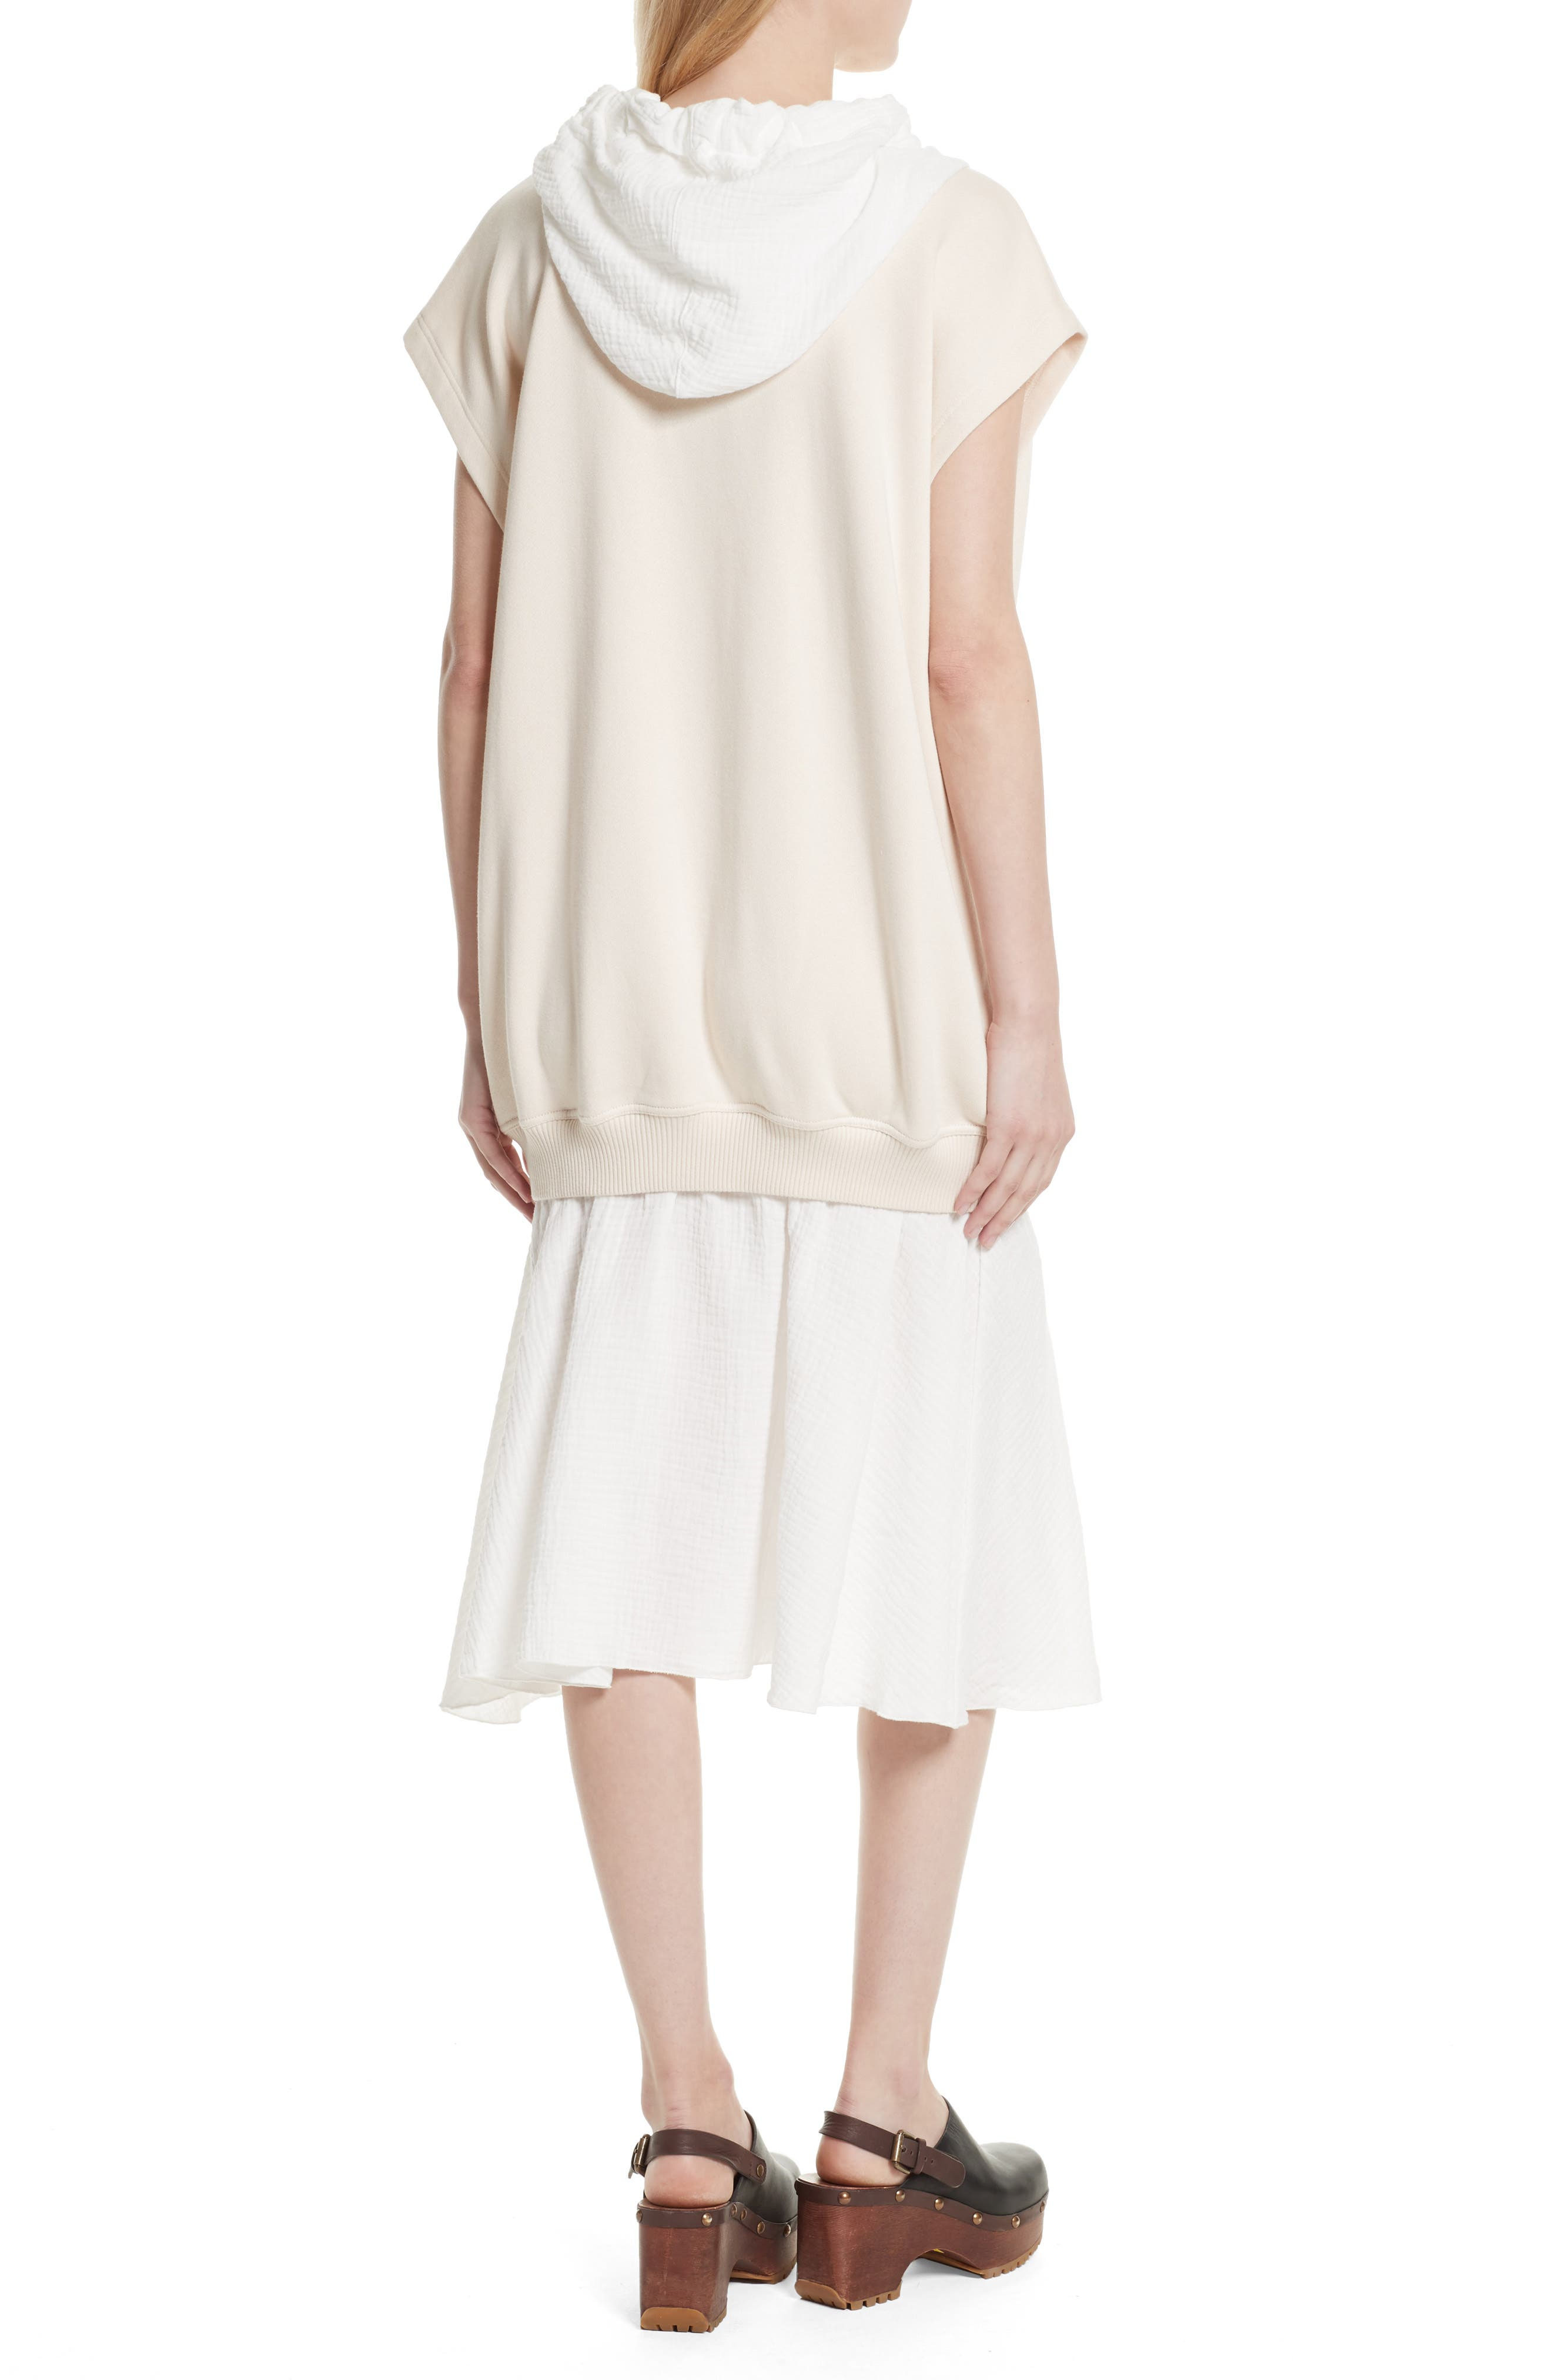 Hooded Sweatshirt Overlay Dress,                             Alternate thumbnail 3, color,                             Abstract White